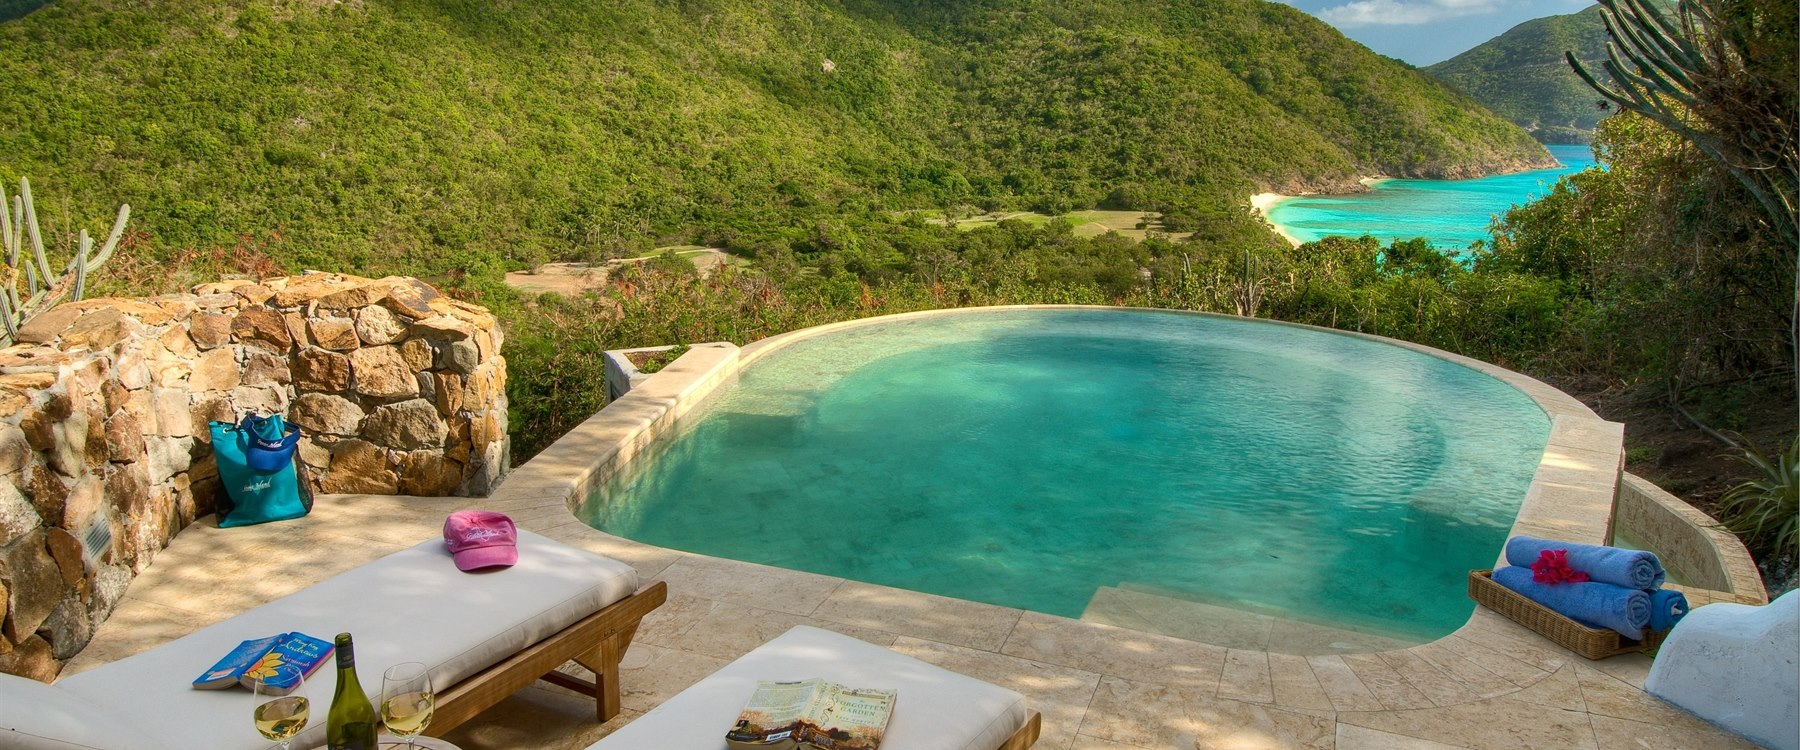 Terrace area in 3 Bedroom Villa at Guana Island, British Virgin Islands